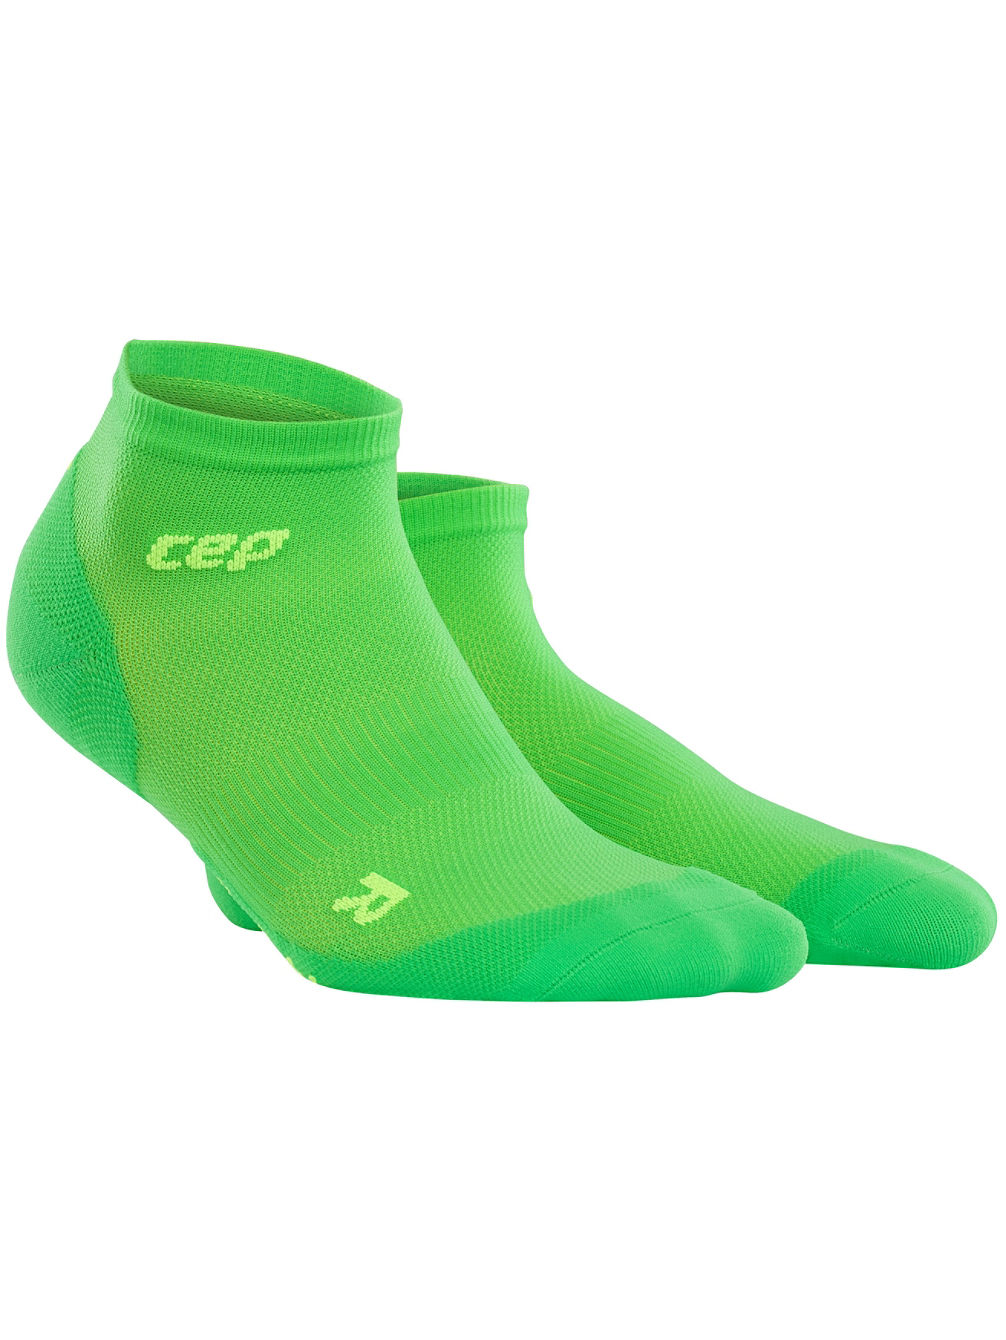 Ultralight Low Cut Socks